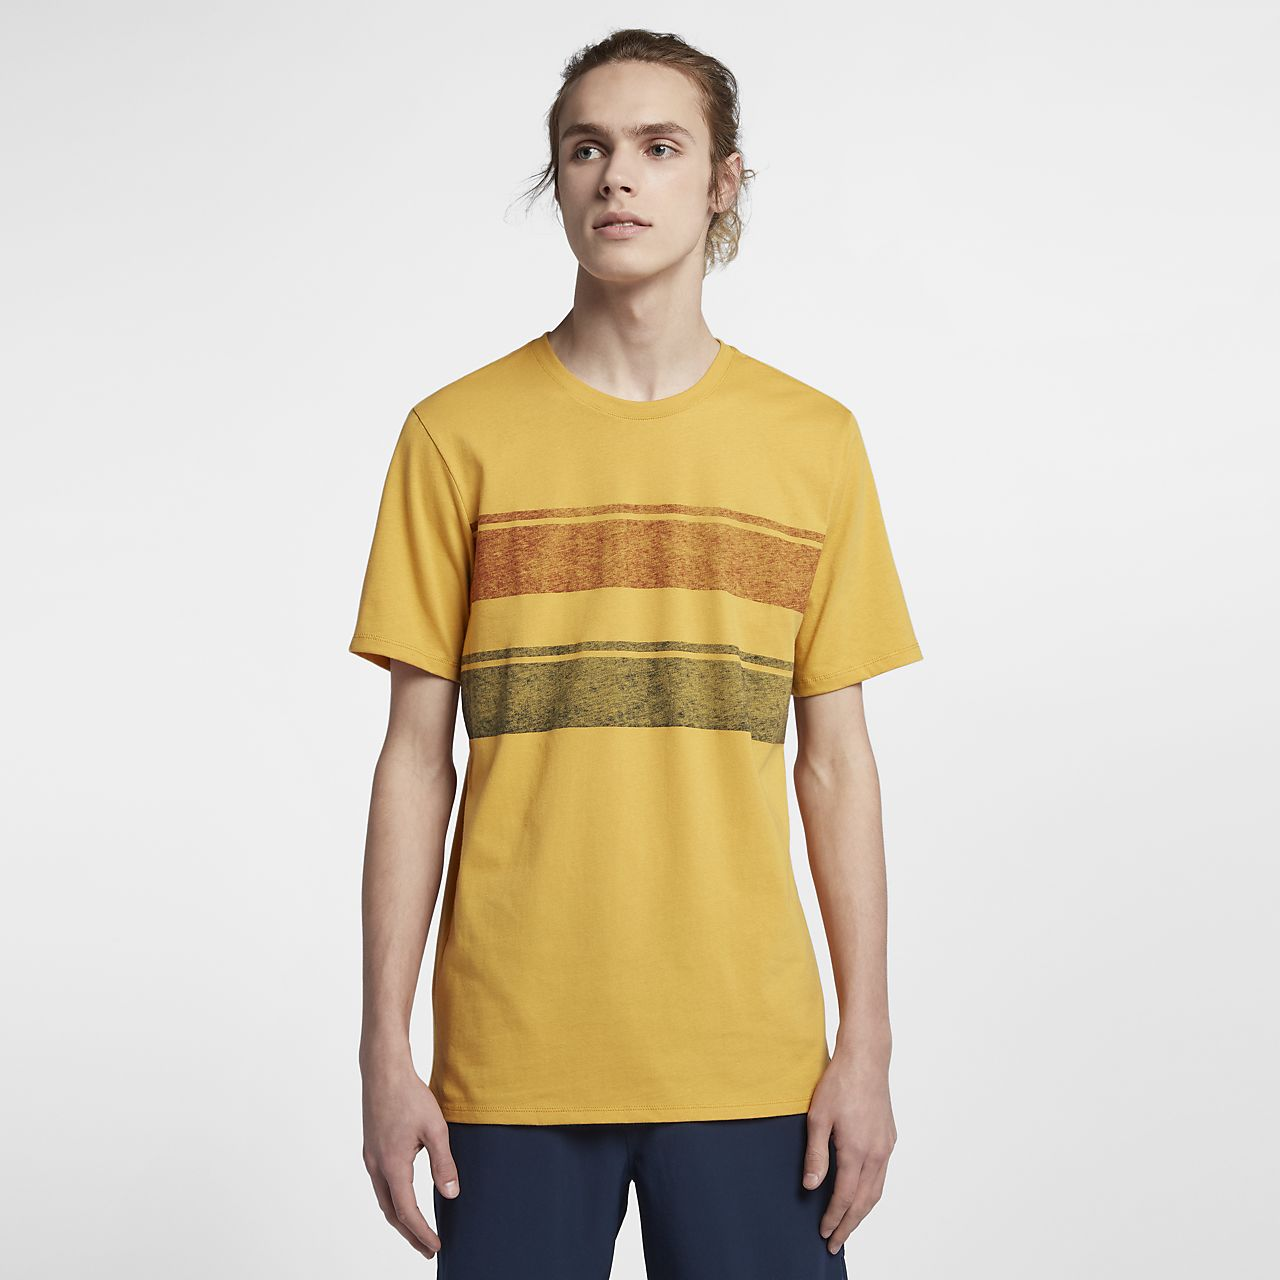 31761315d0 Hurley Pendleton Yellowstone Striped Men s T-Shirt. Nike.com